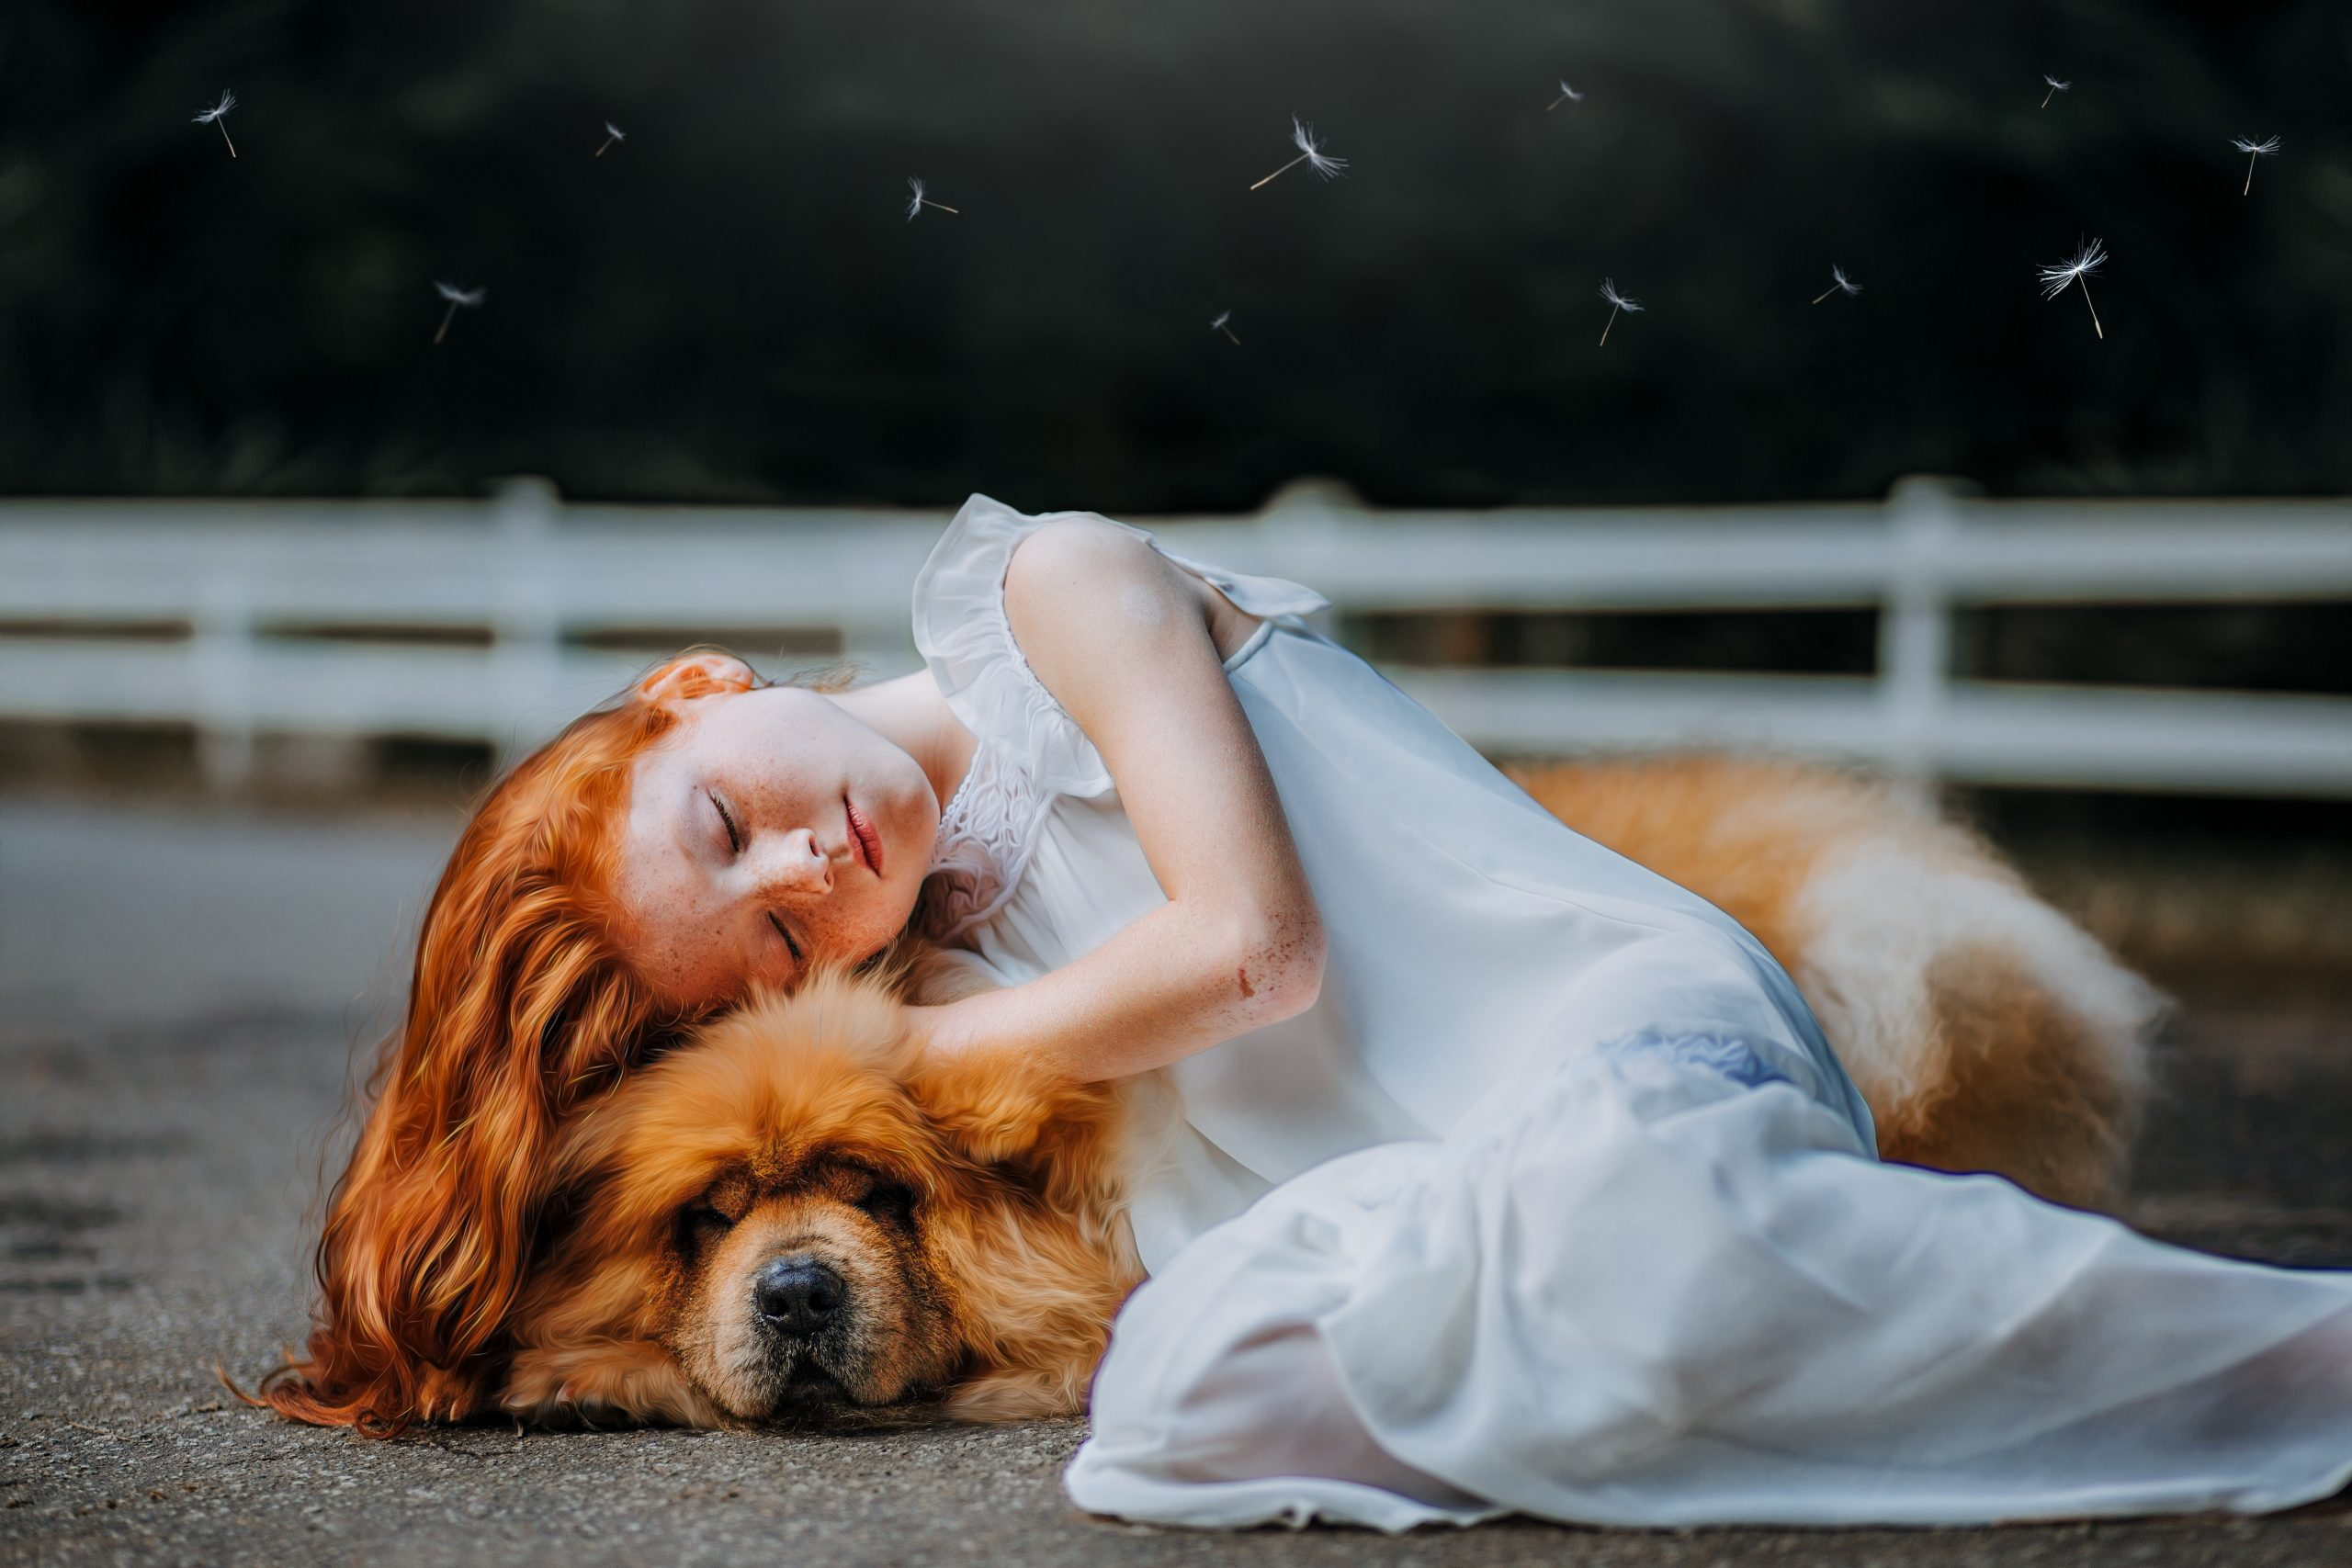 Pet Photography: Why You Should Go With It?